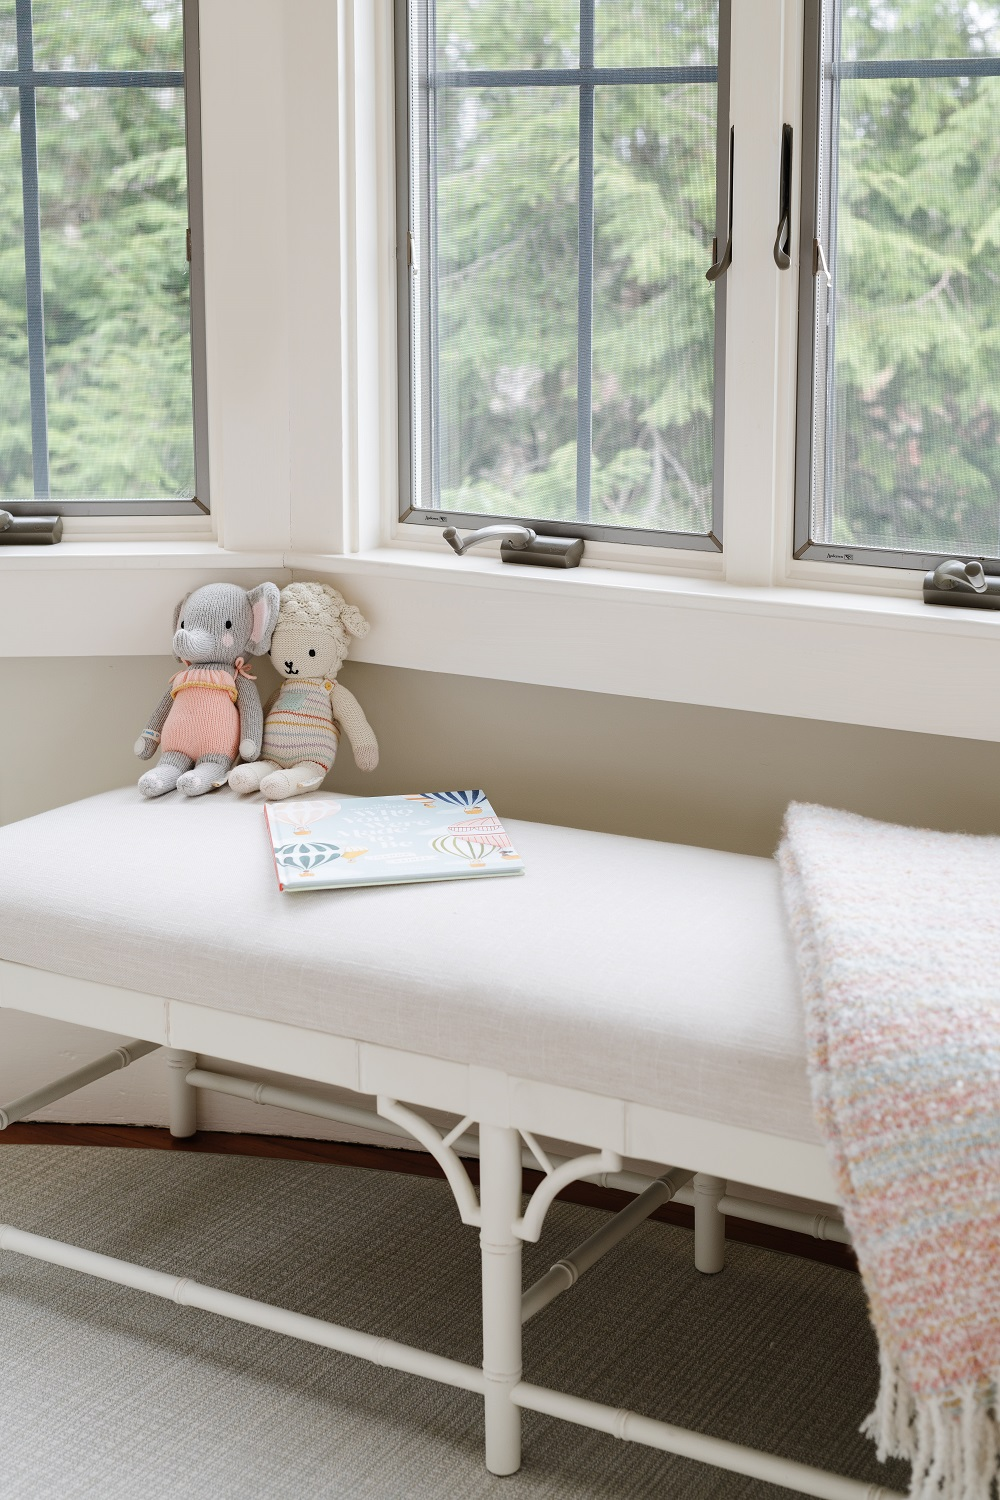 Detail of children's bedroom with bed bench and throw blanket